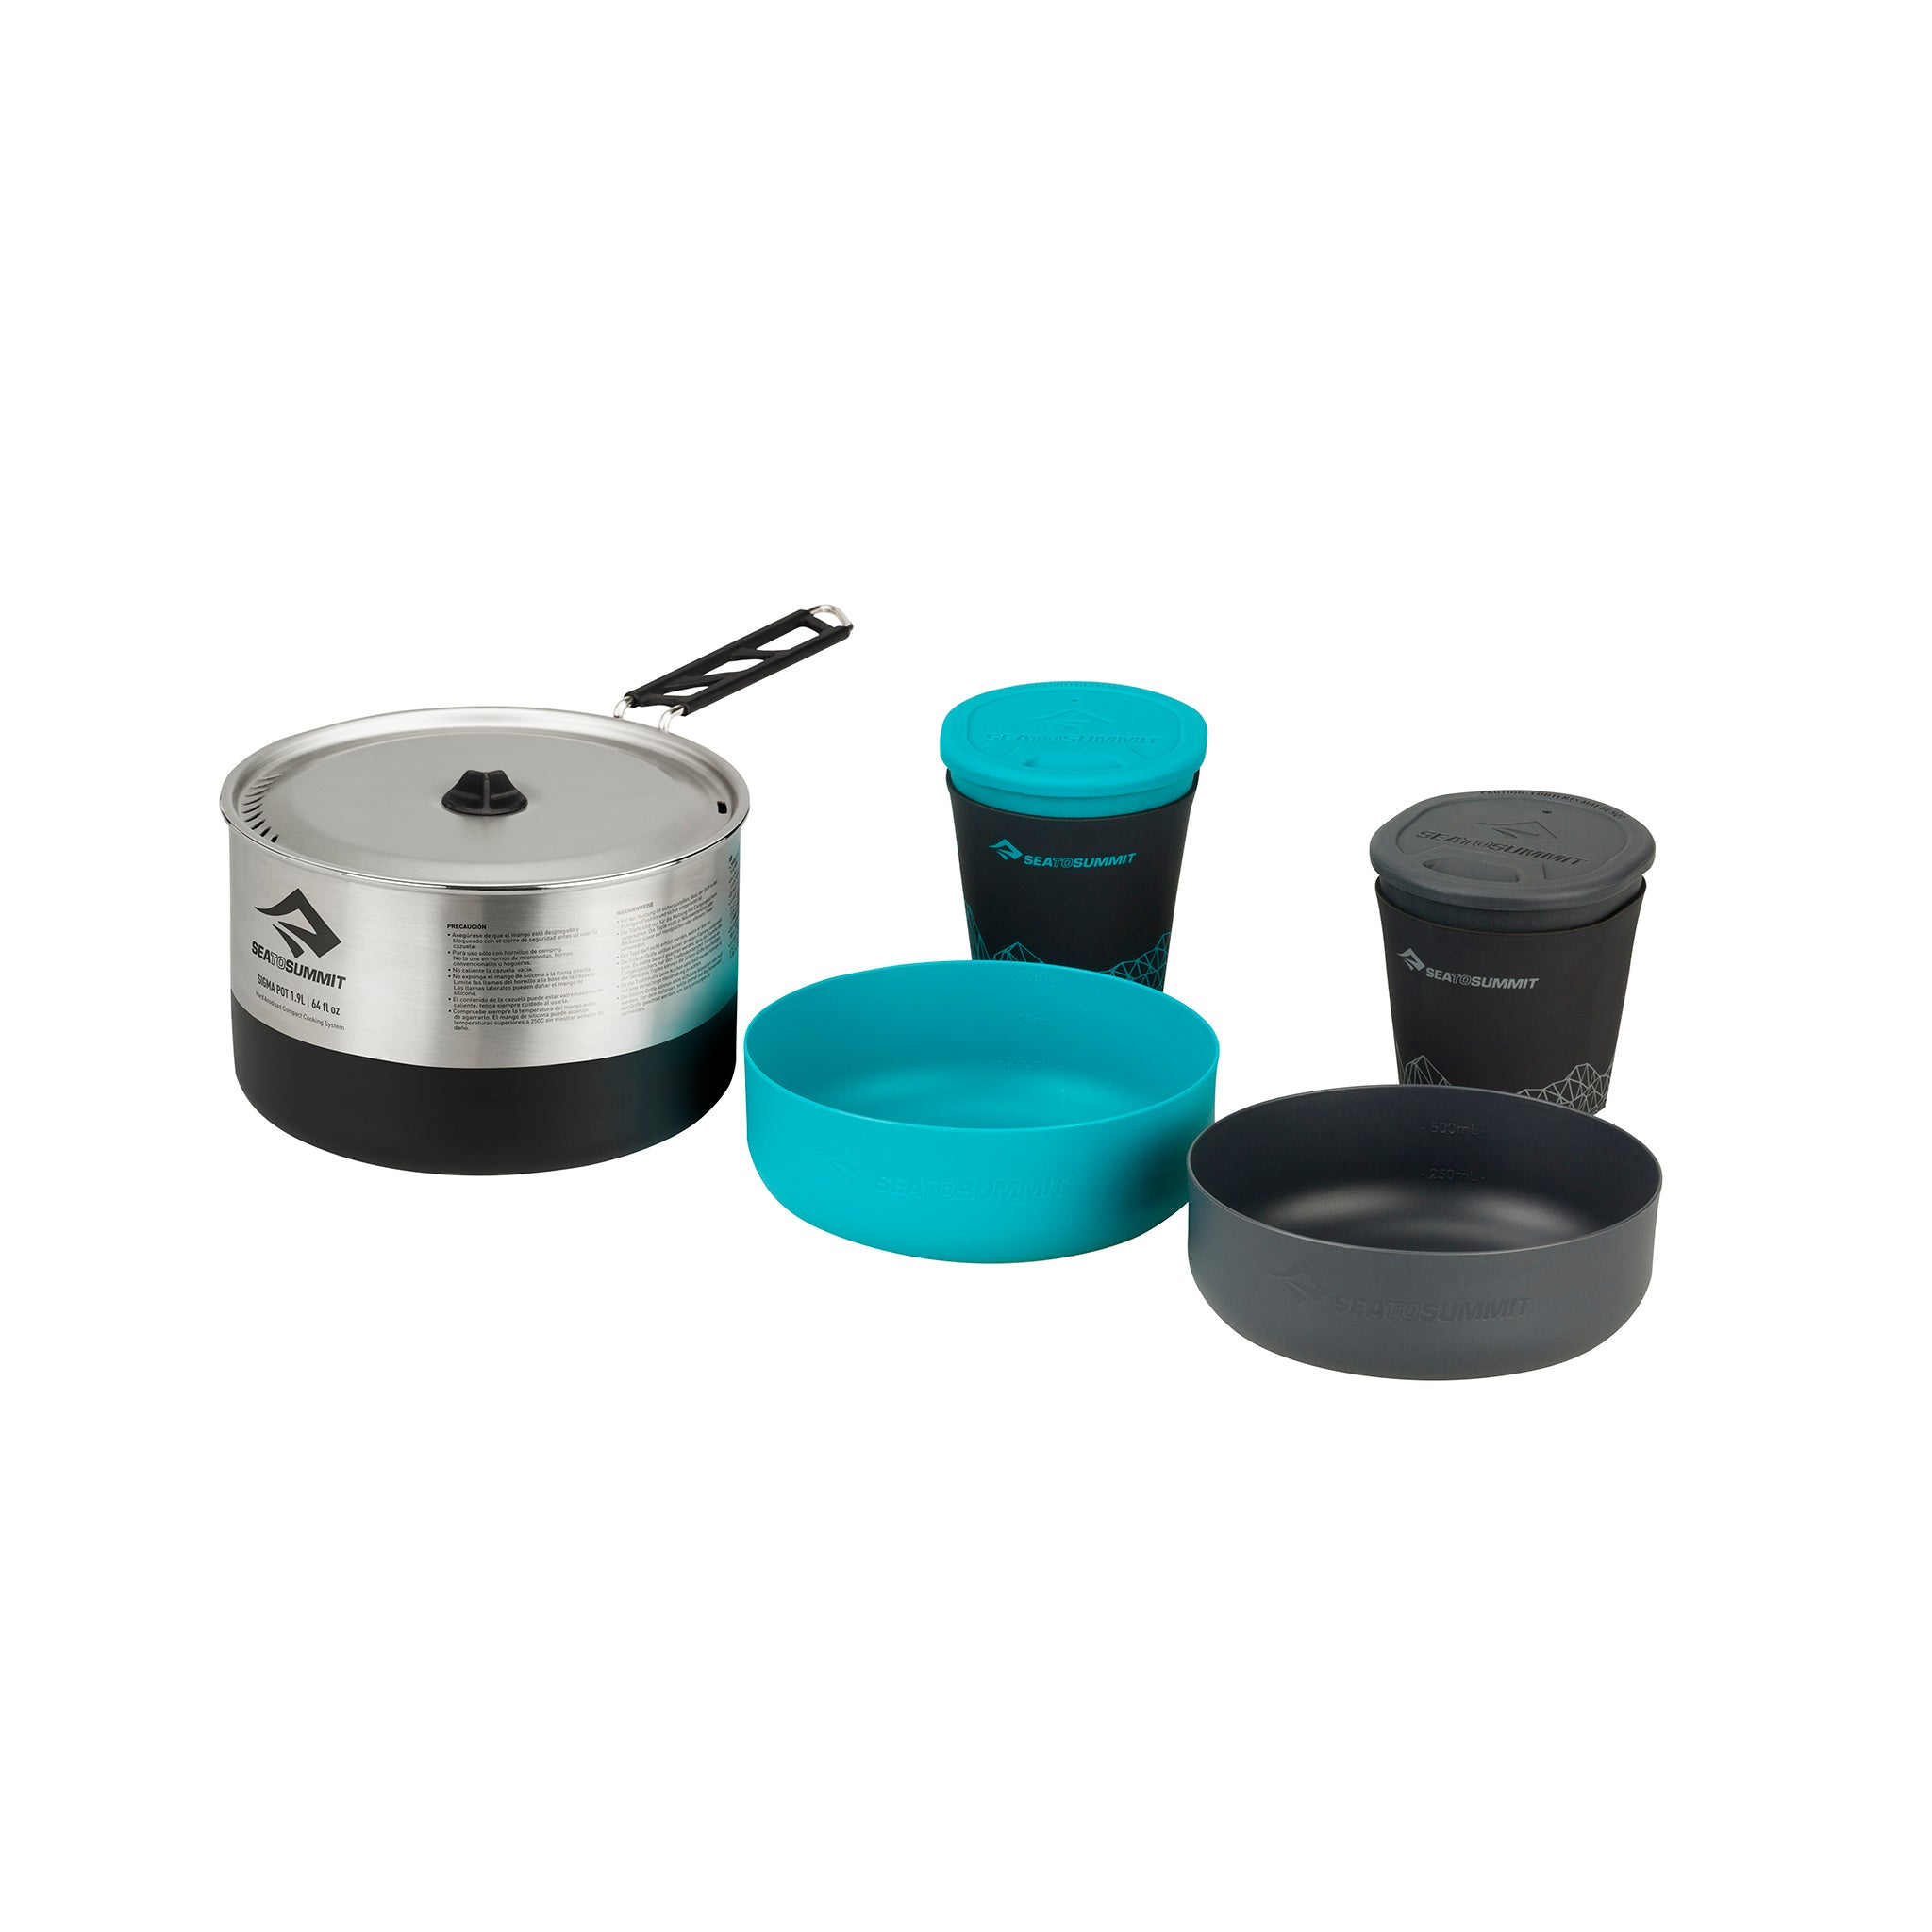 Sigma Stainless Camping Cookware Set _ 1 pot, 2 bowls & 2 mugs